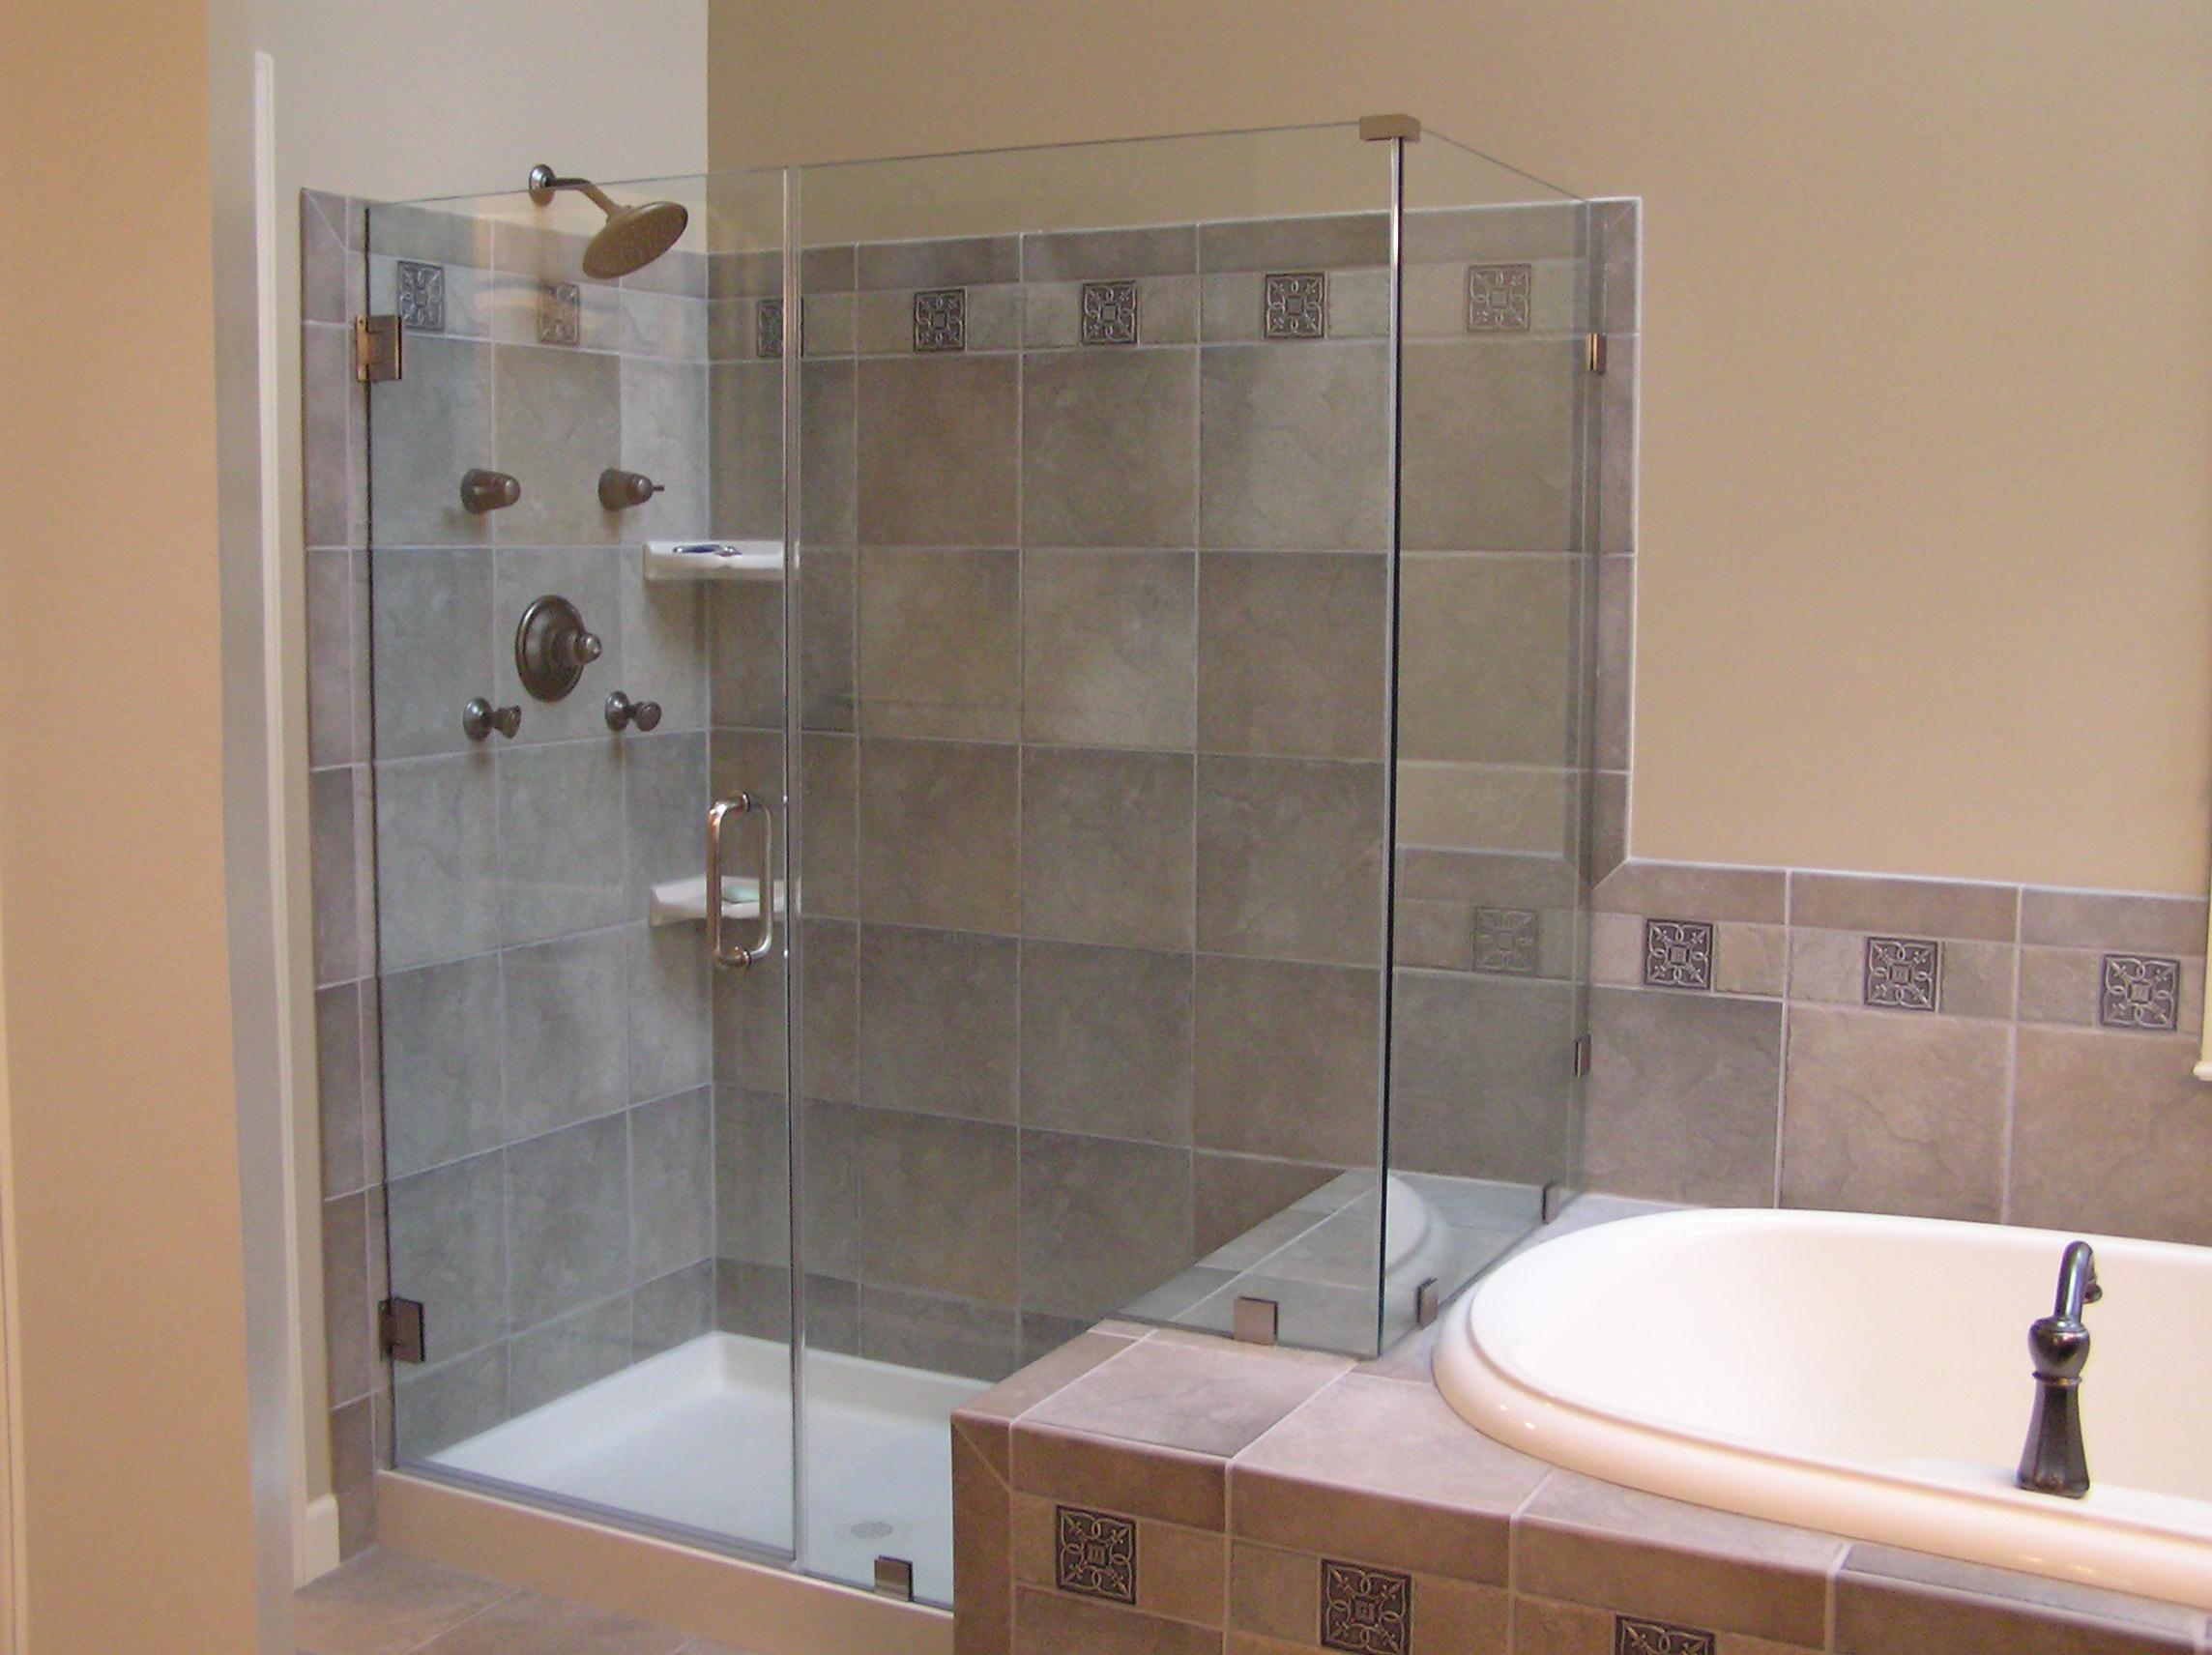 Bathroom Remodel Delaware Home Improvement Contractors - Bathroom shower renovations photos